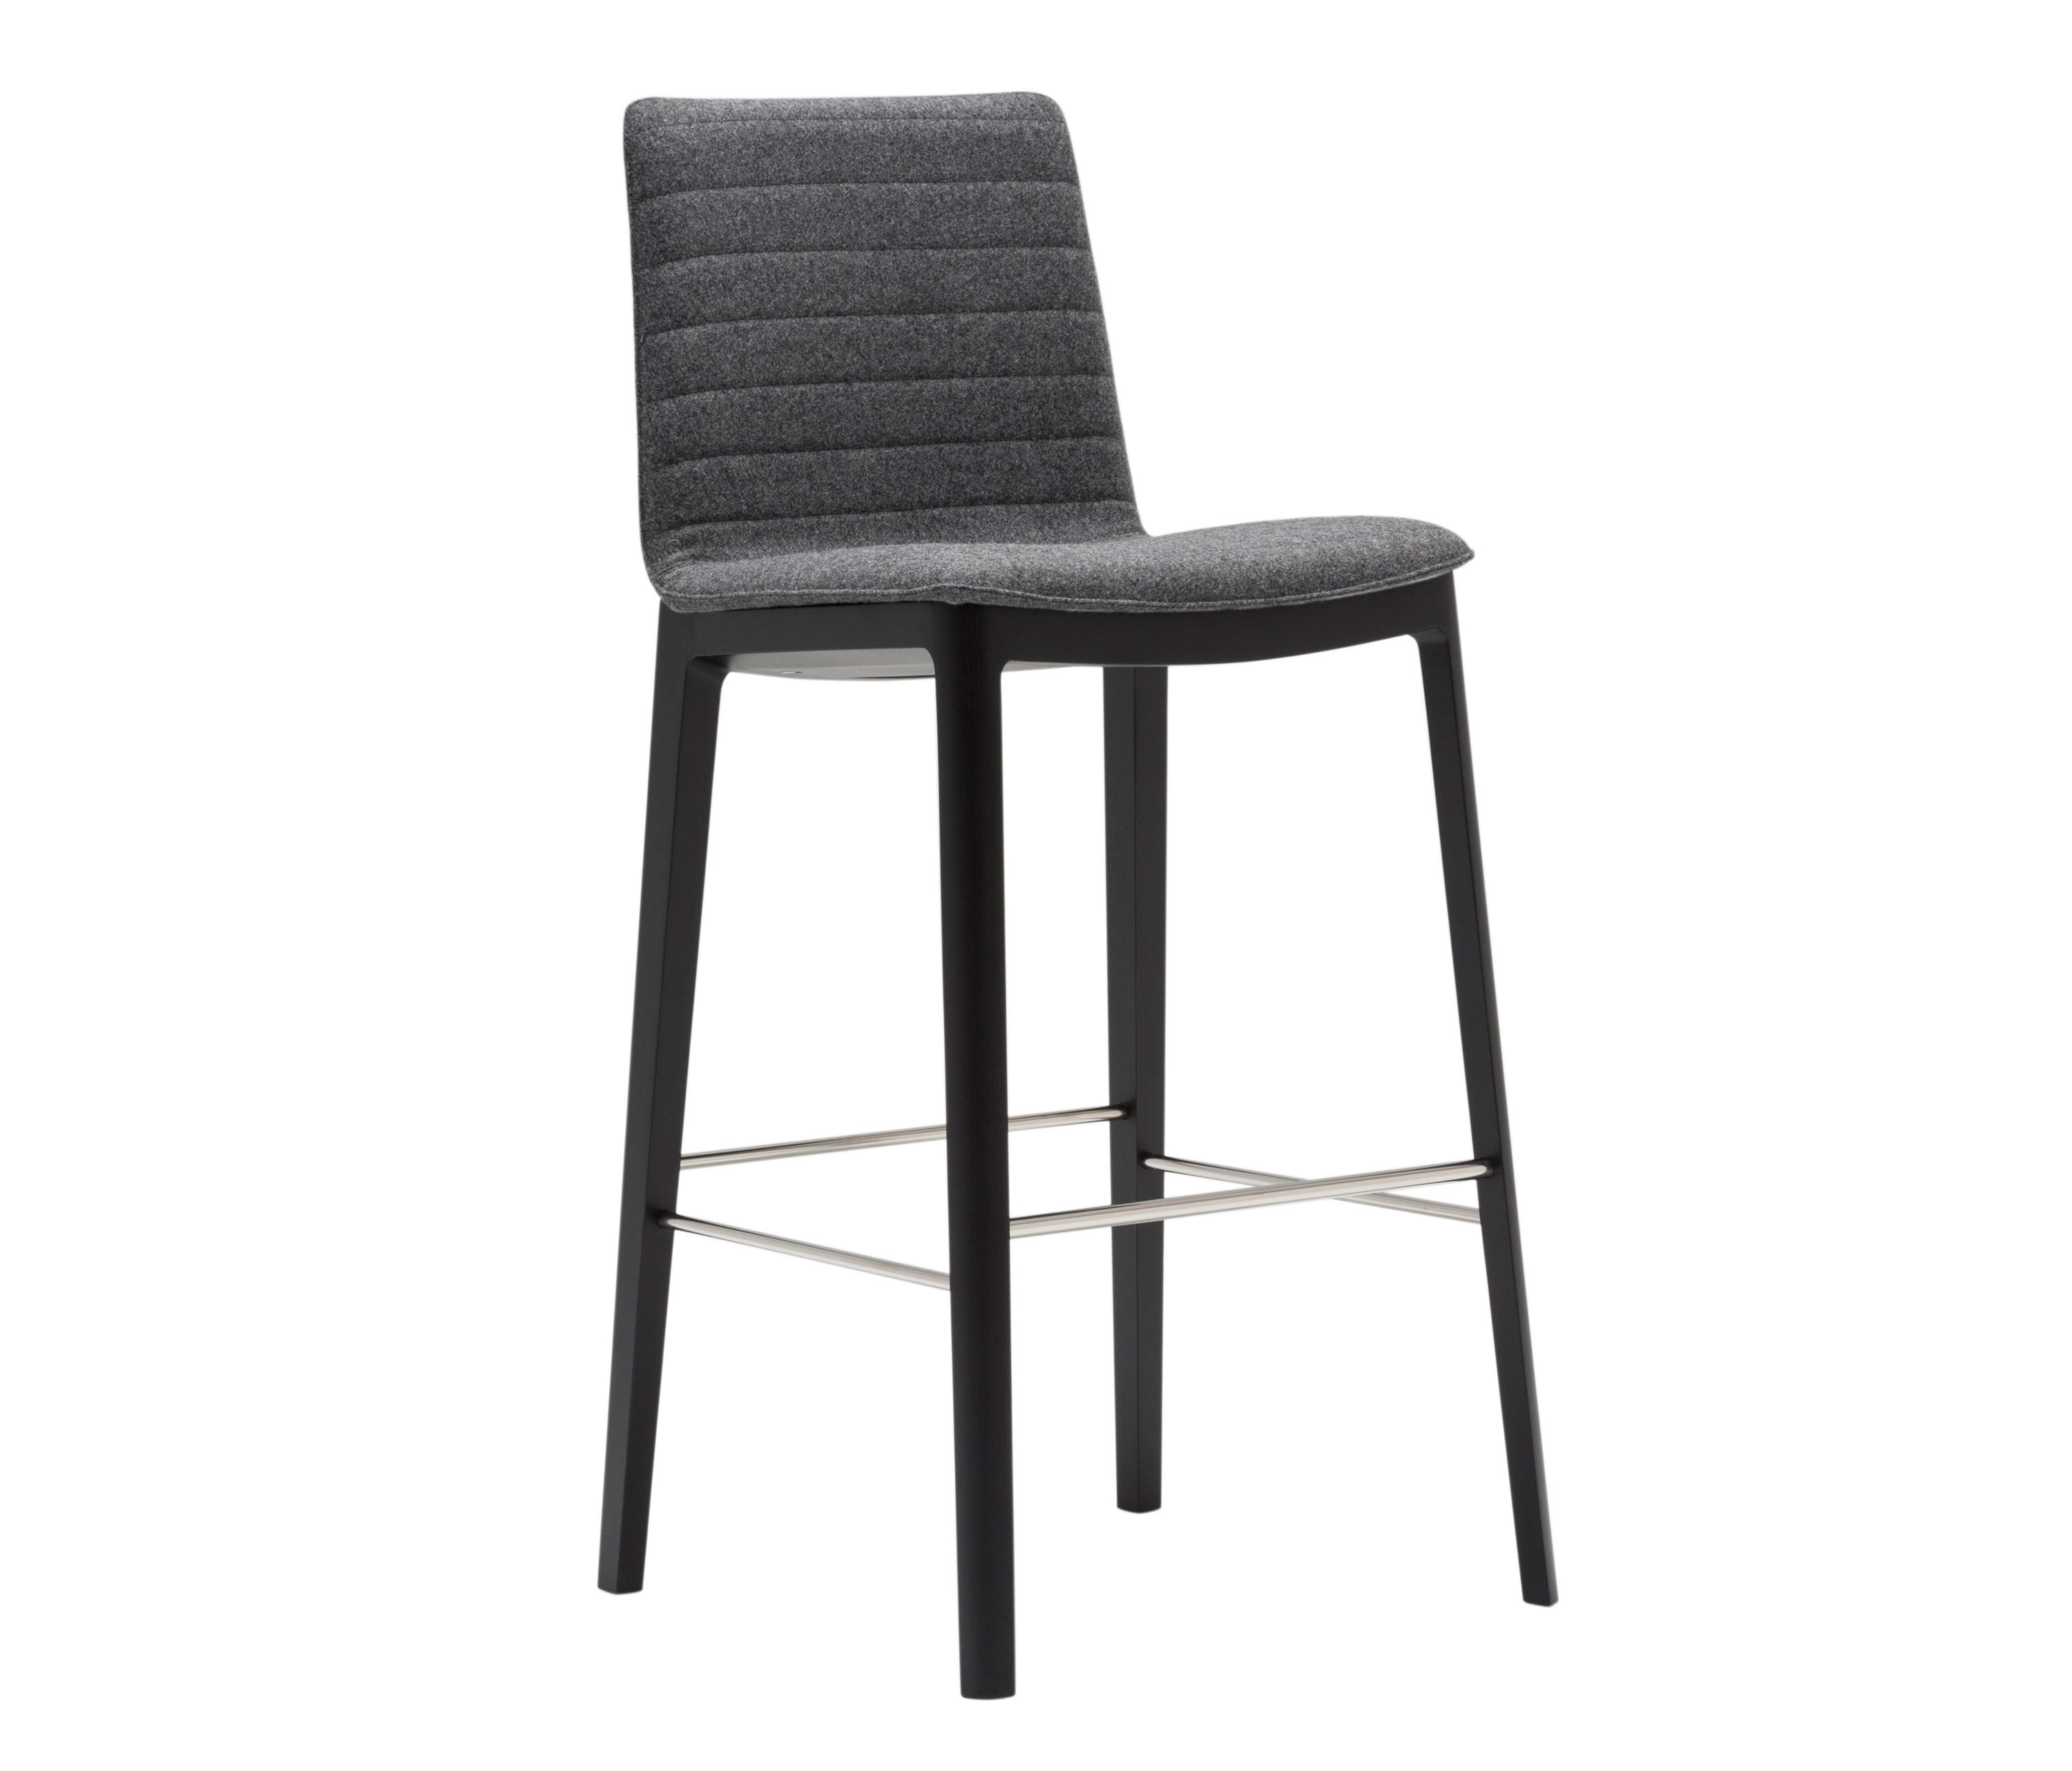 High Back Stools Flex High Back Bq 1667 Bar Stools From Andreu World